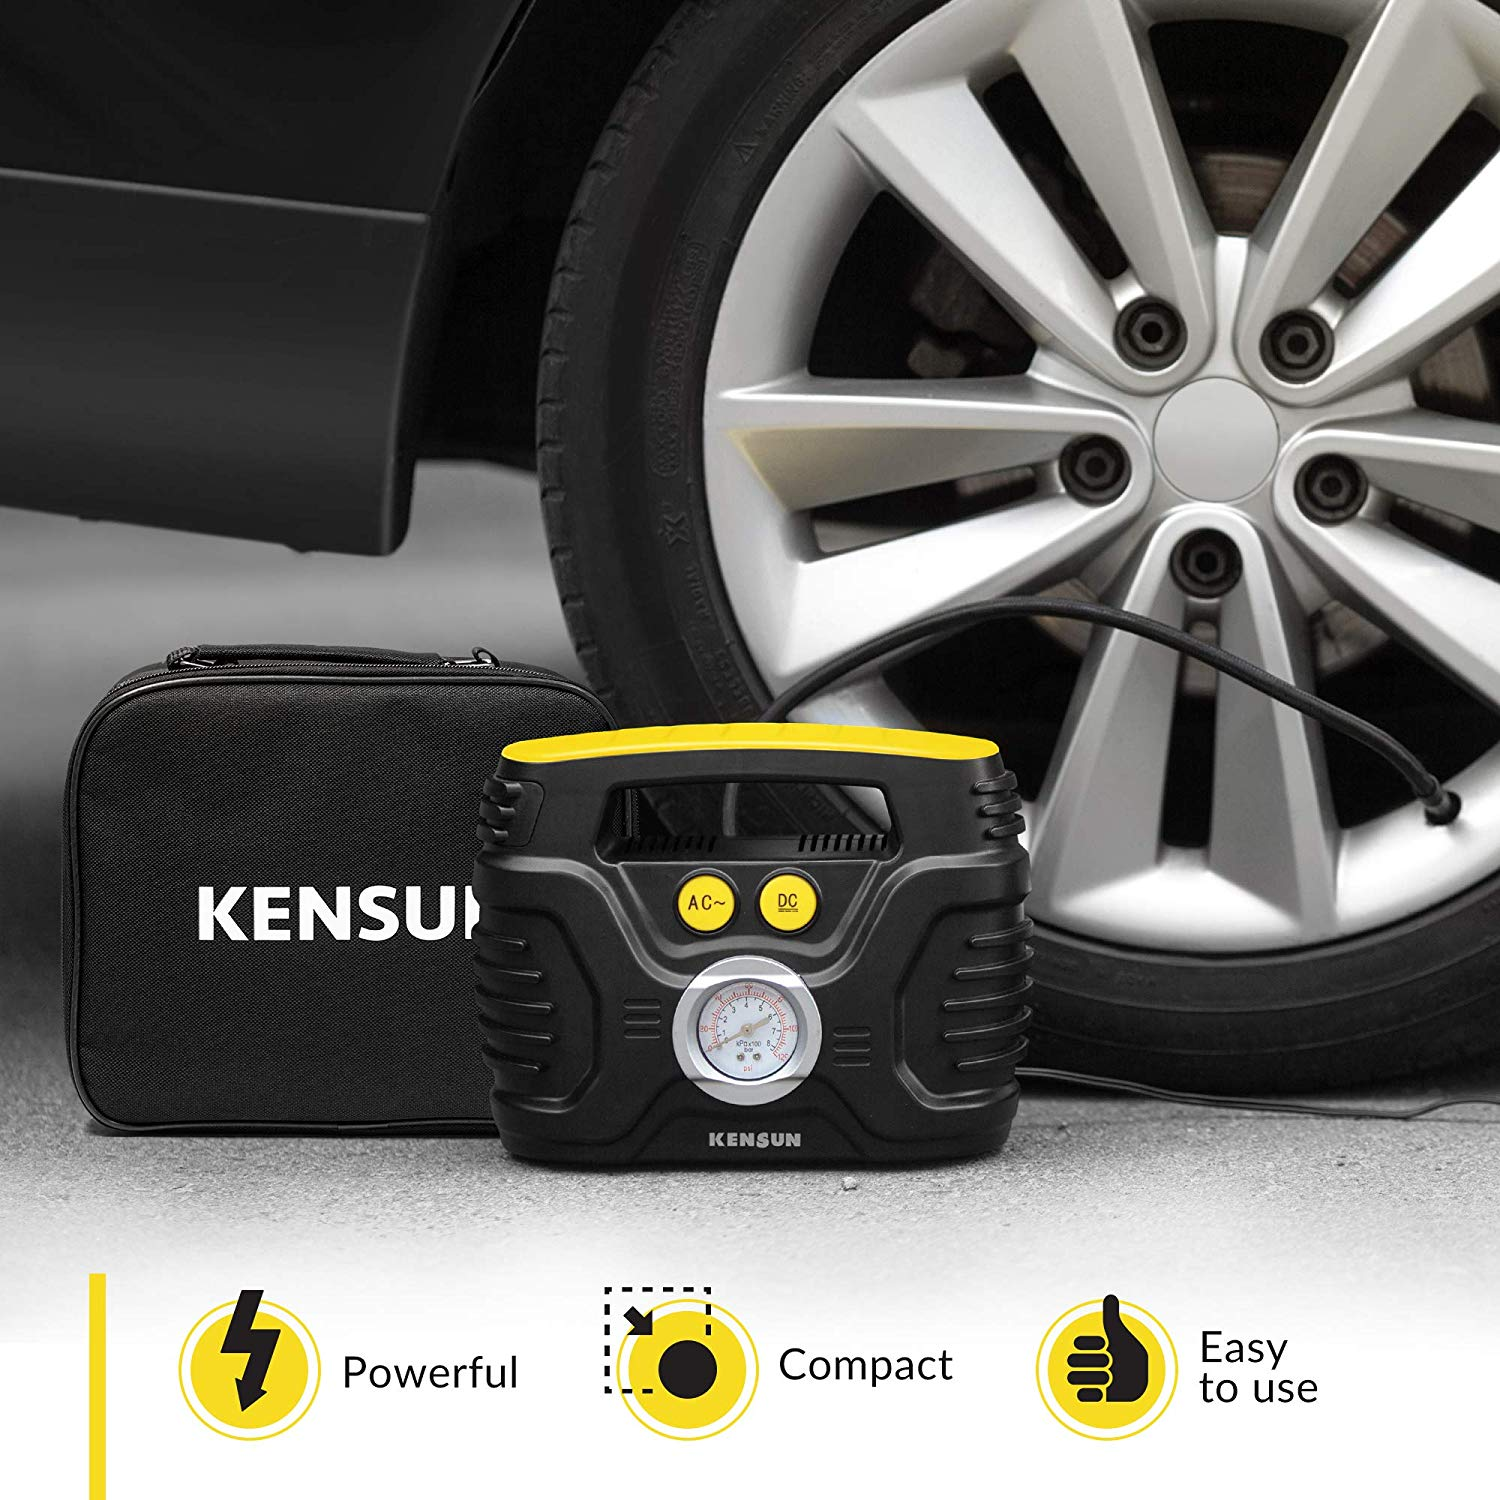 Kensun Portable Air Compressor